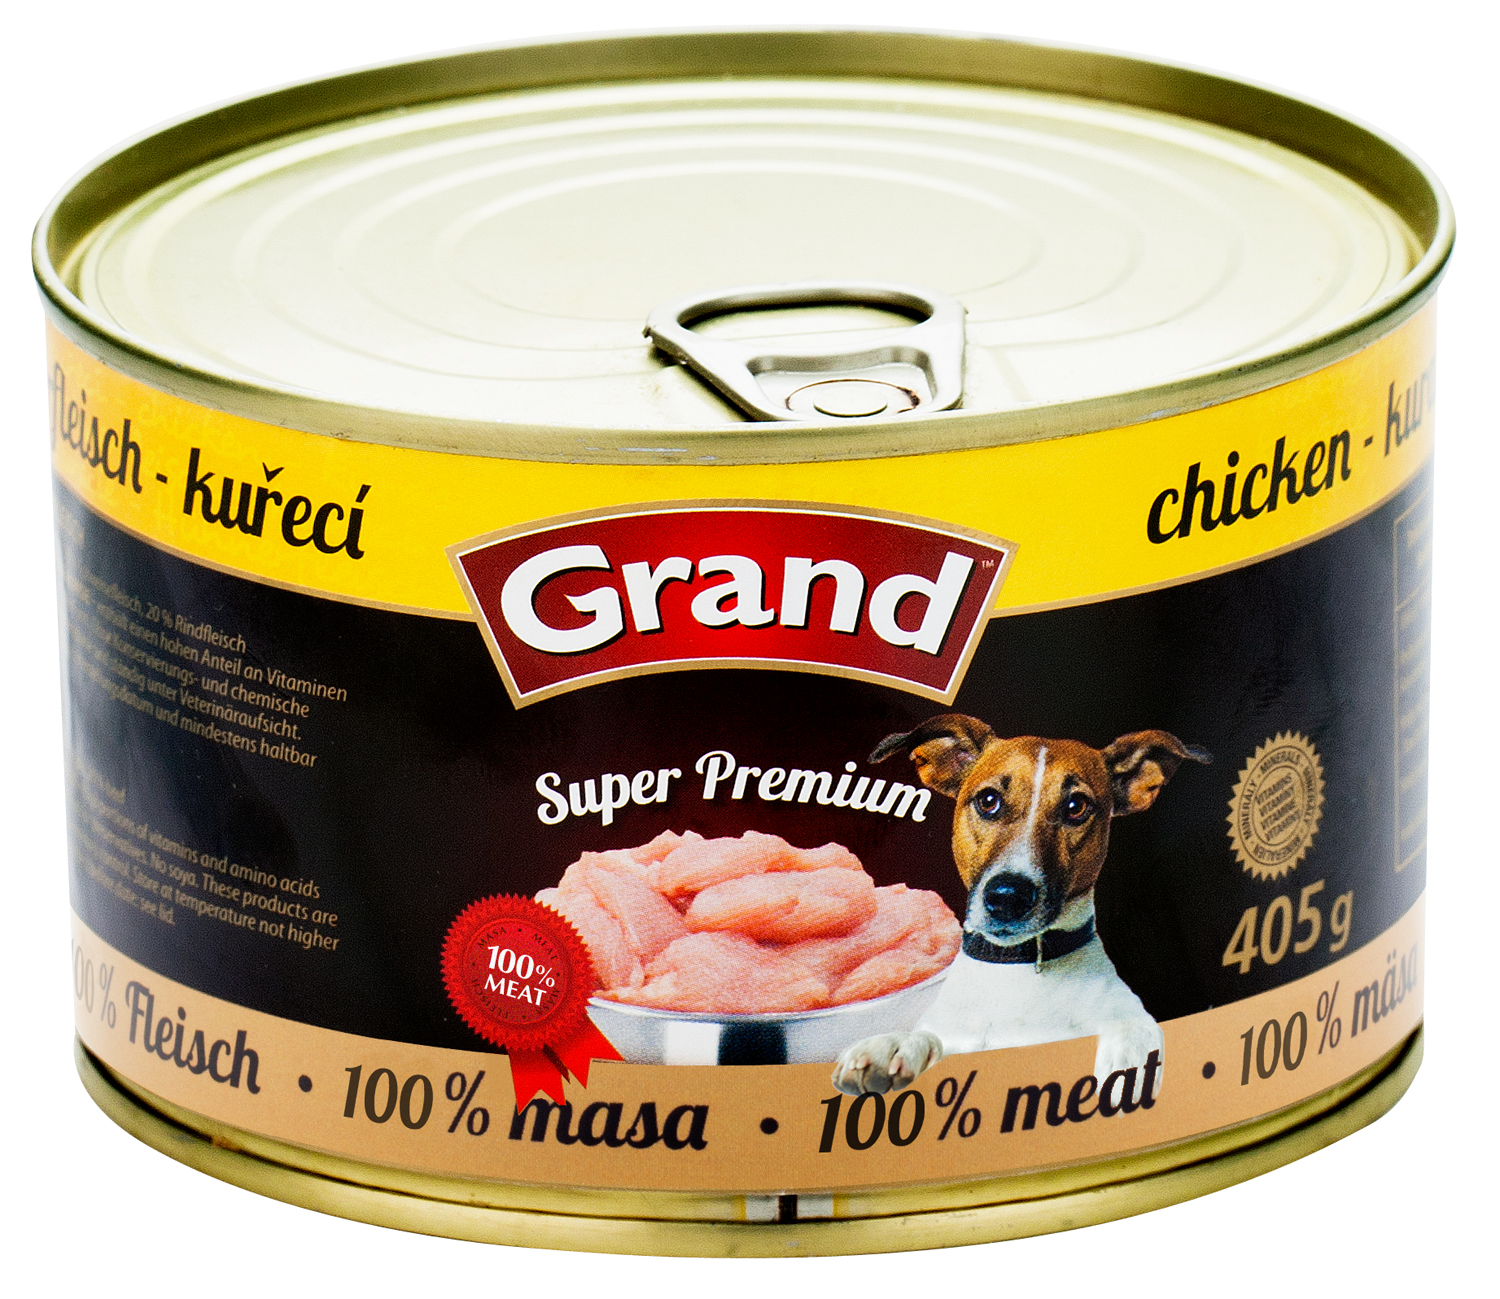 GRAND SuperPremium Kuřecí - DOG 405g